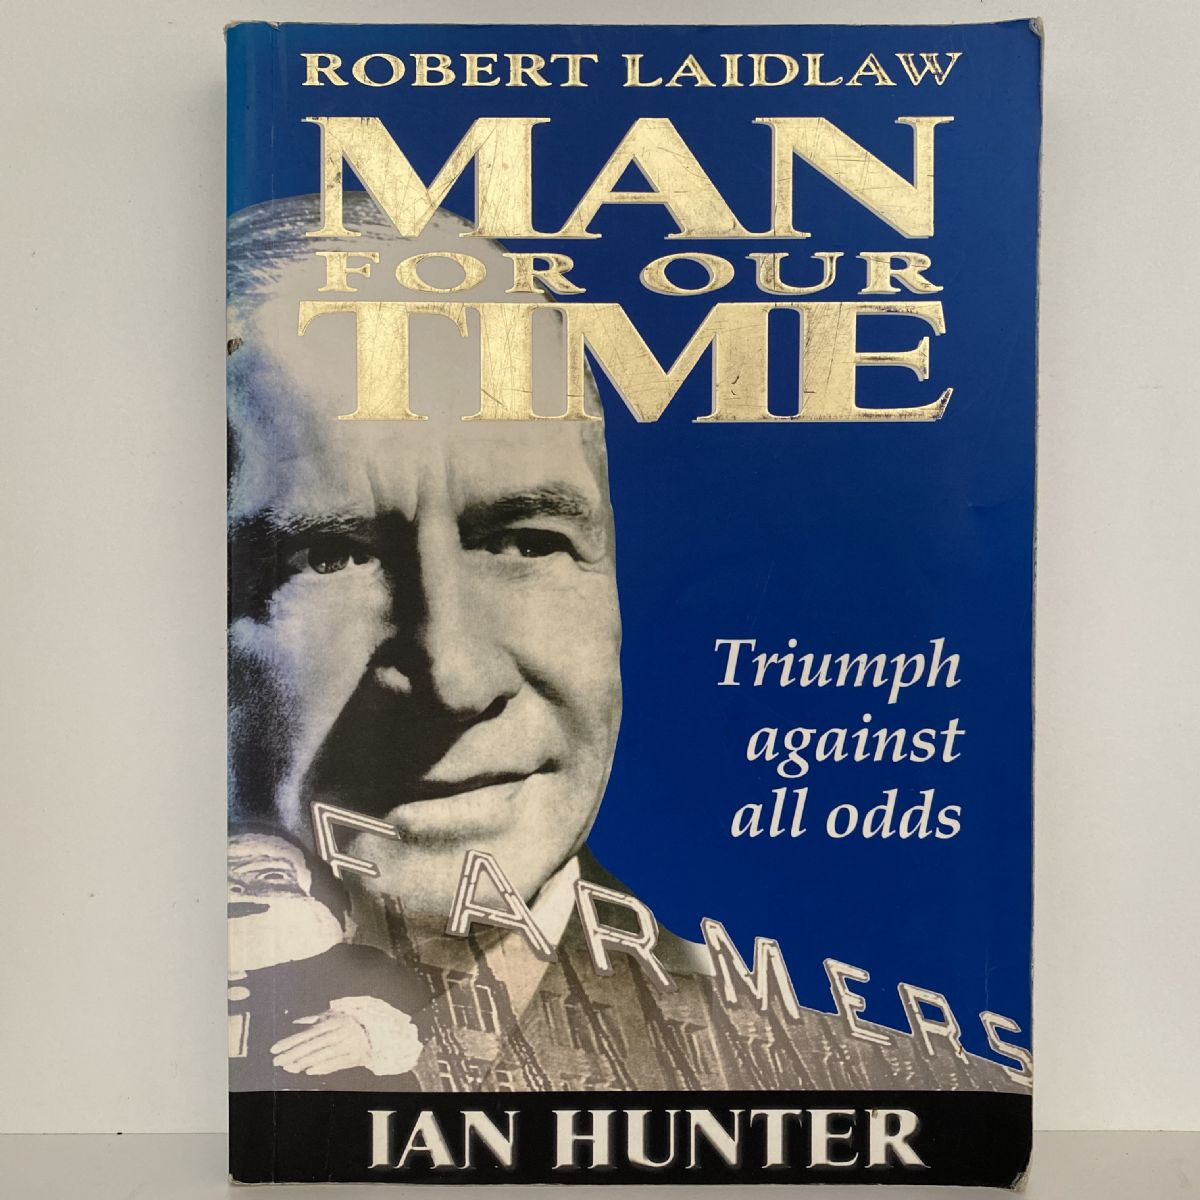 Robert Laidlaw Man for Our Time: Triumph against all odds